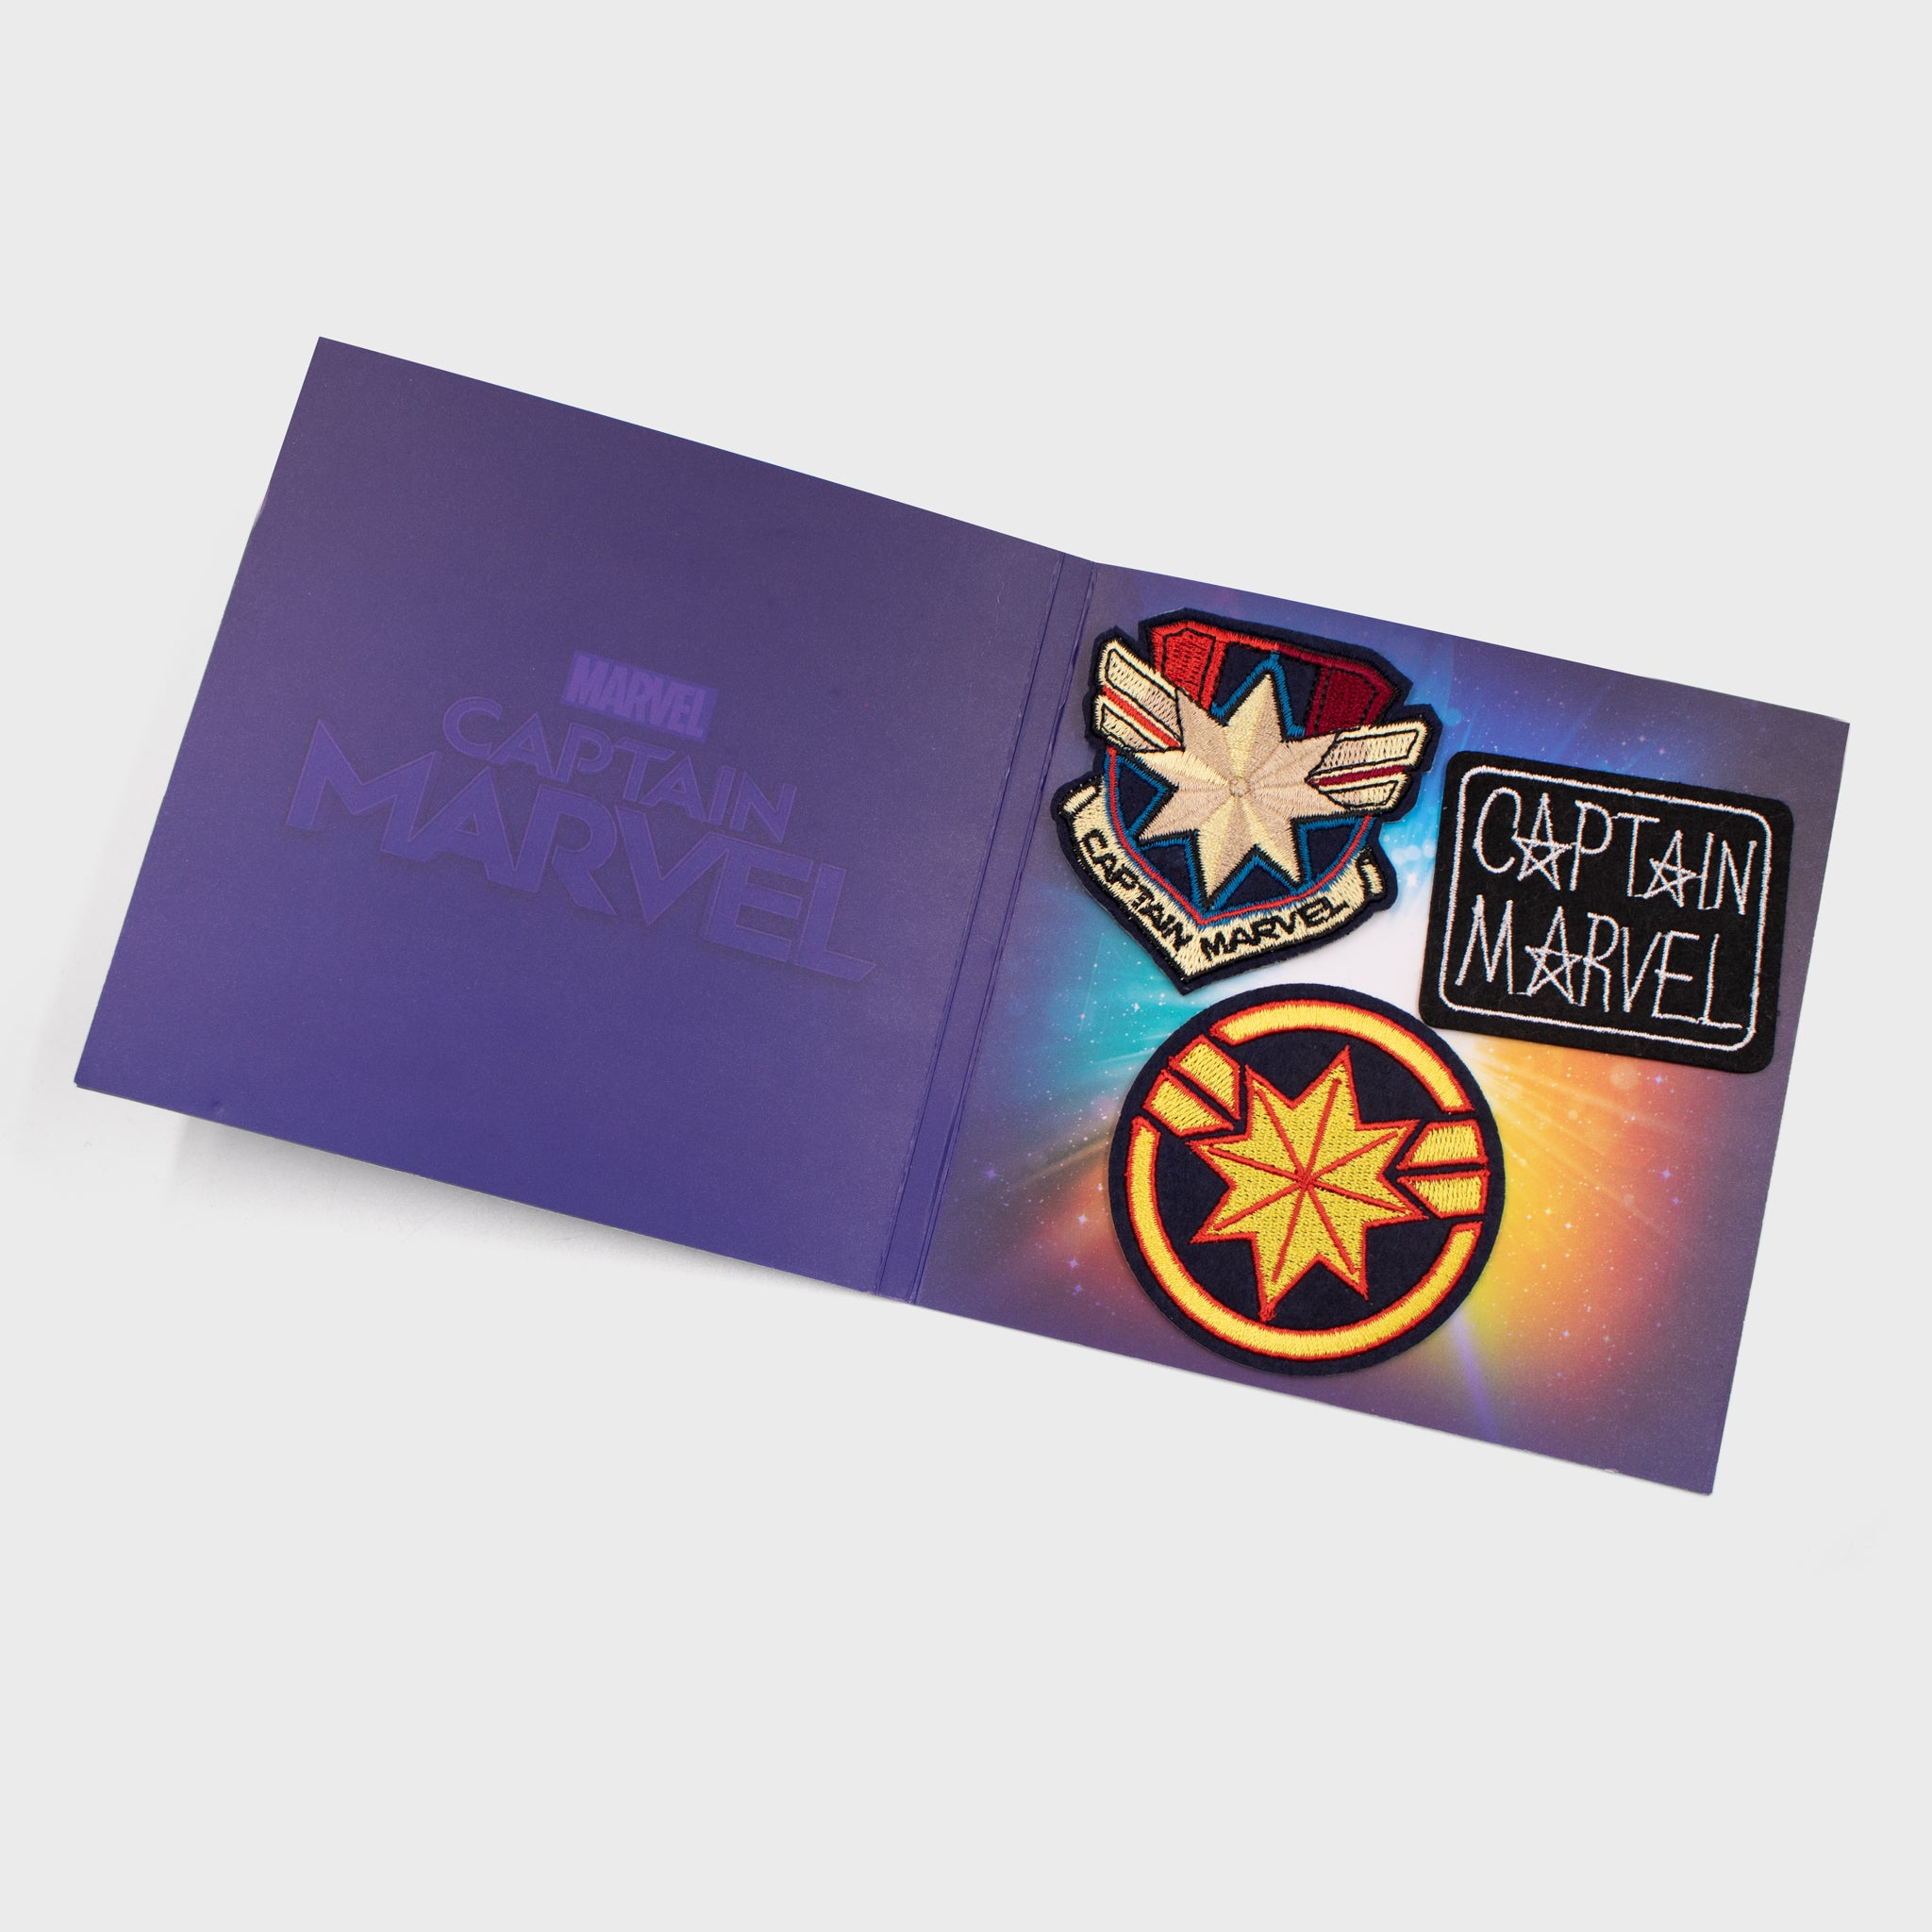 captain marvel marvel entertainment mcu movie patch set superhero collectible collector exclusive box culturefly